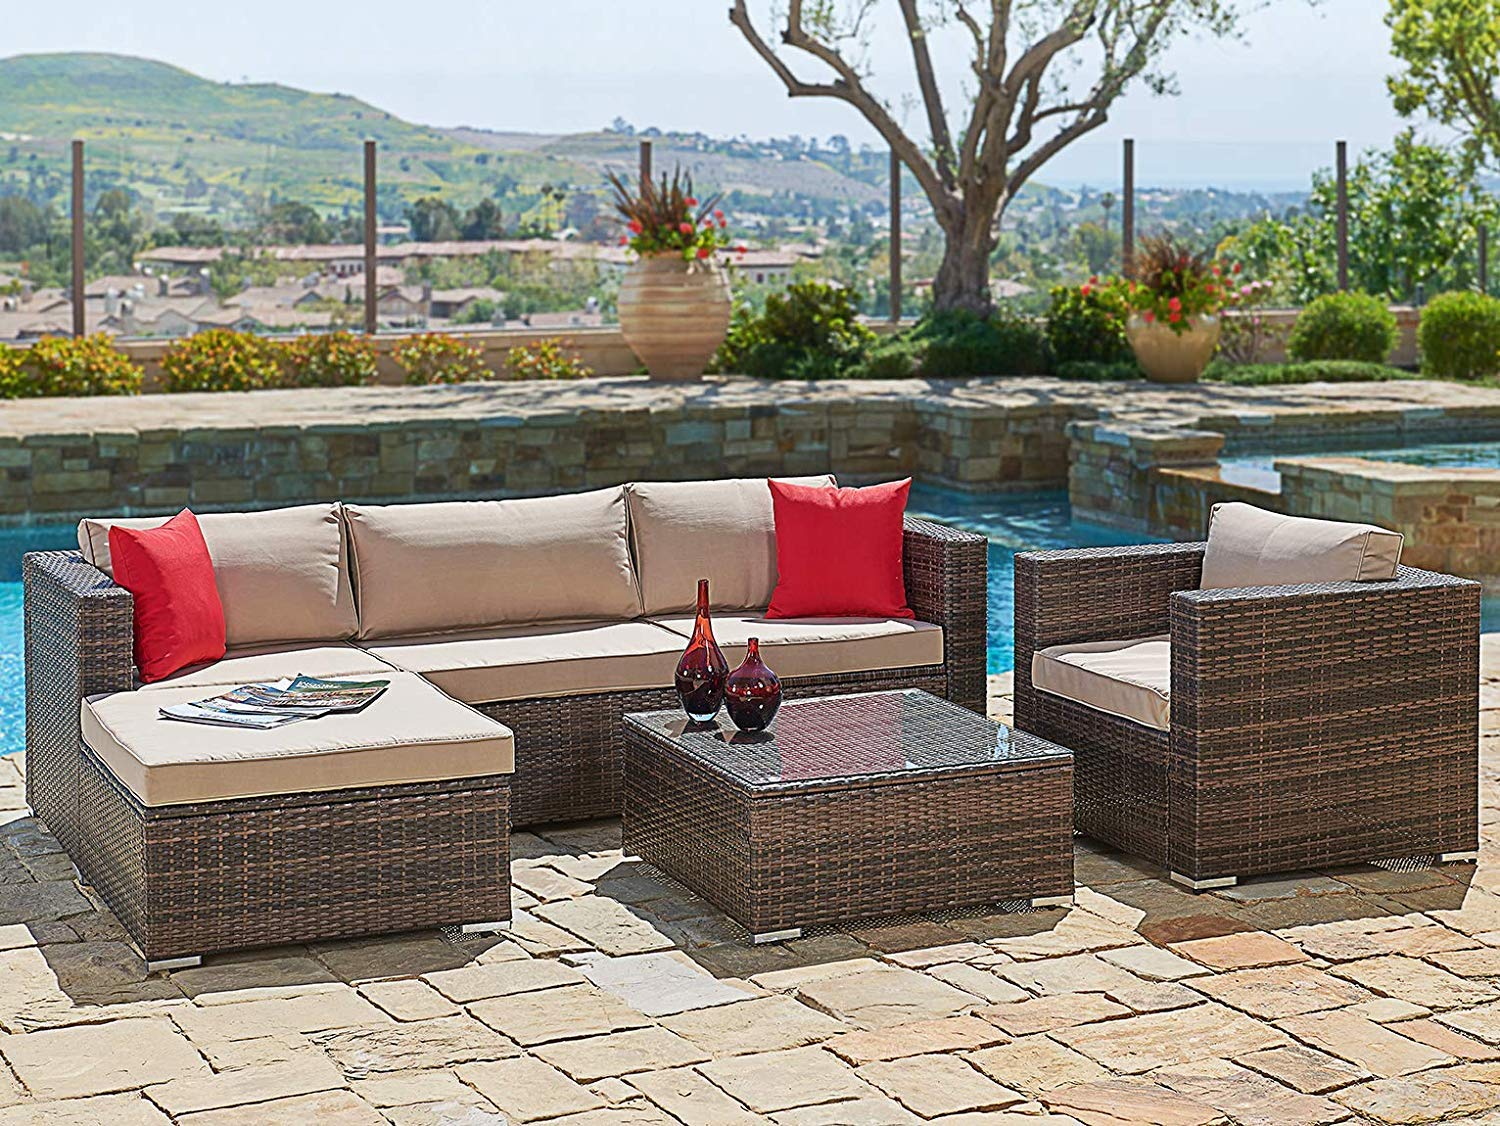 Suncrown outdoor furniture sectional sofa chair 6 piece set all weather checkered wicker with brown seat cushions modern glass coffee table patio